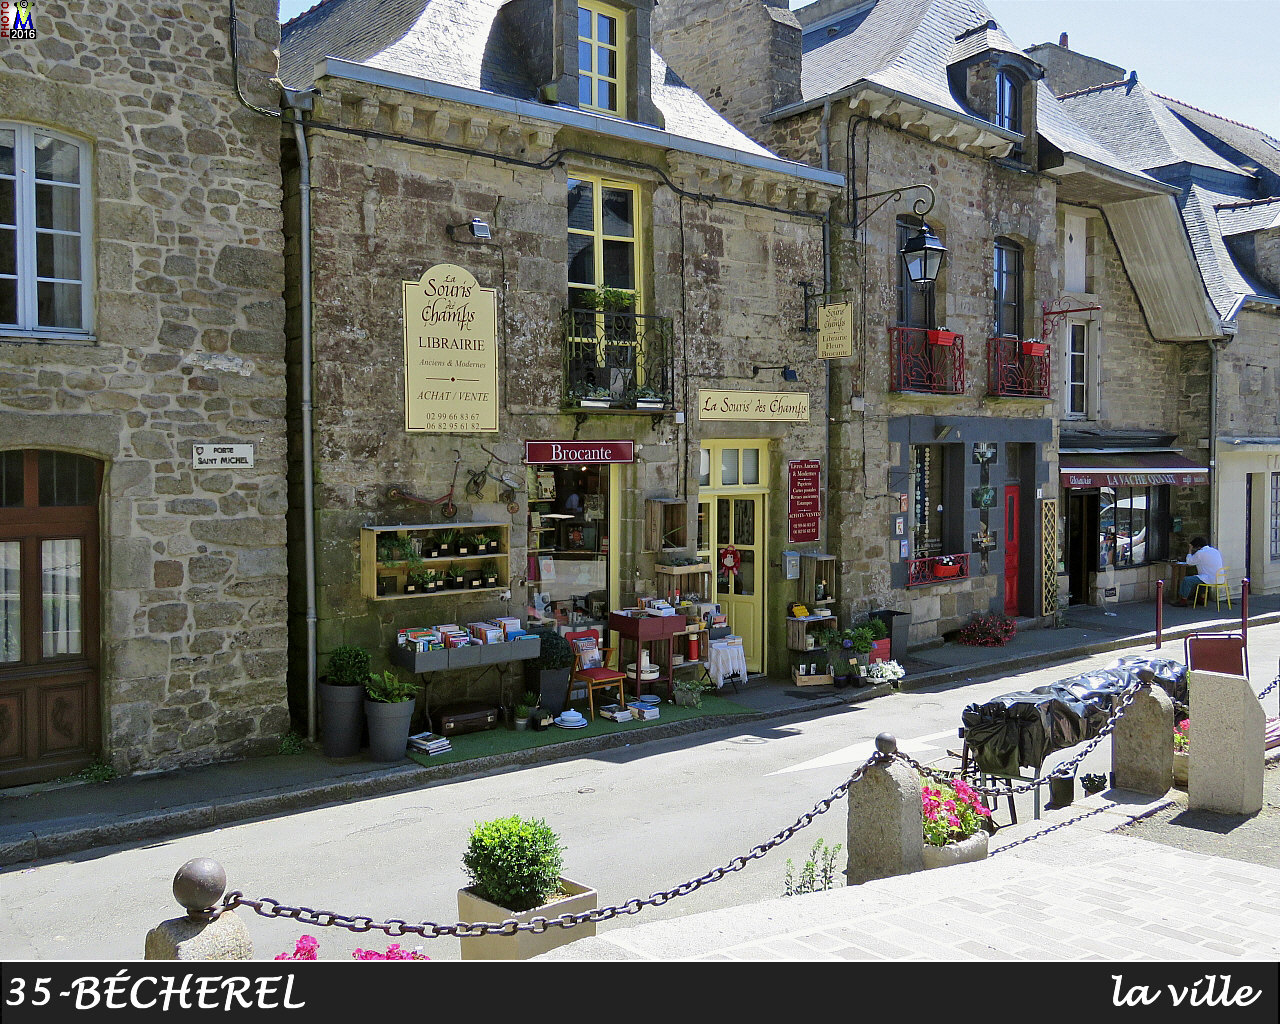 35BECHEREL_ville_106.jpg